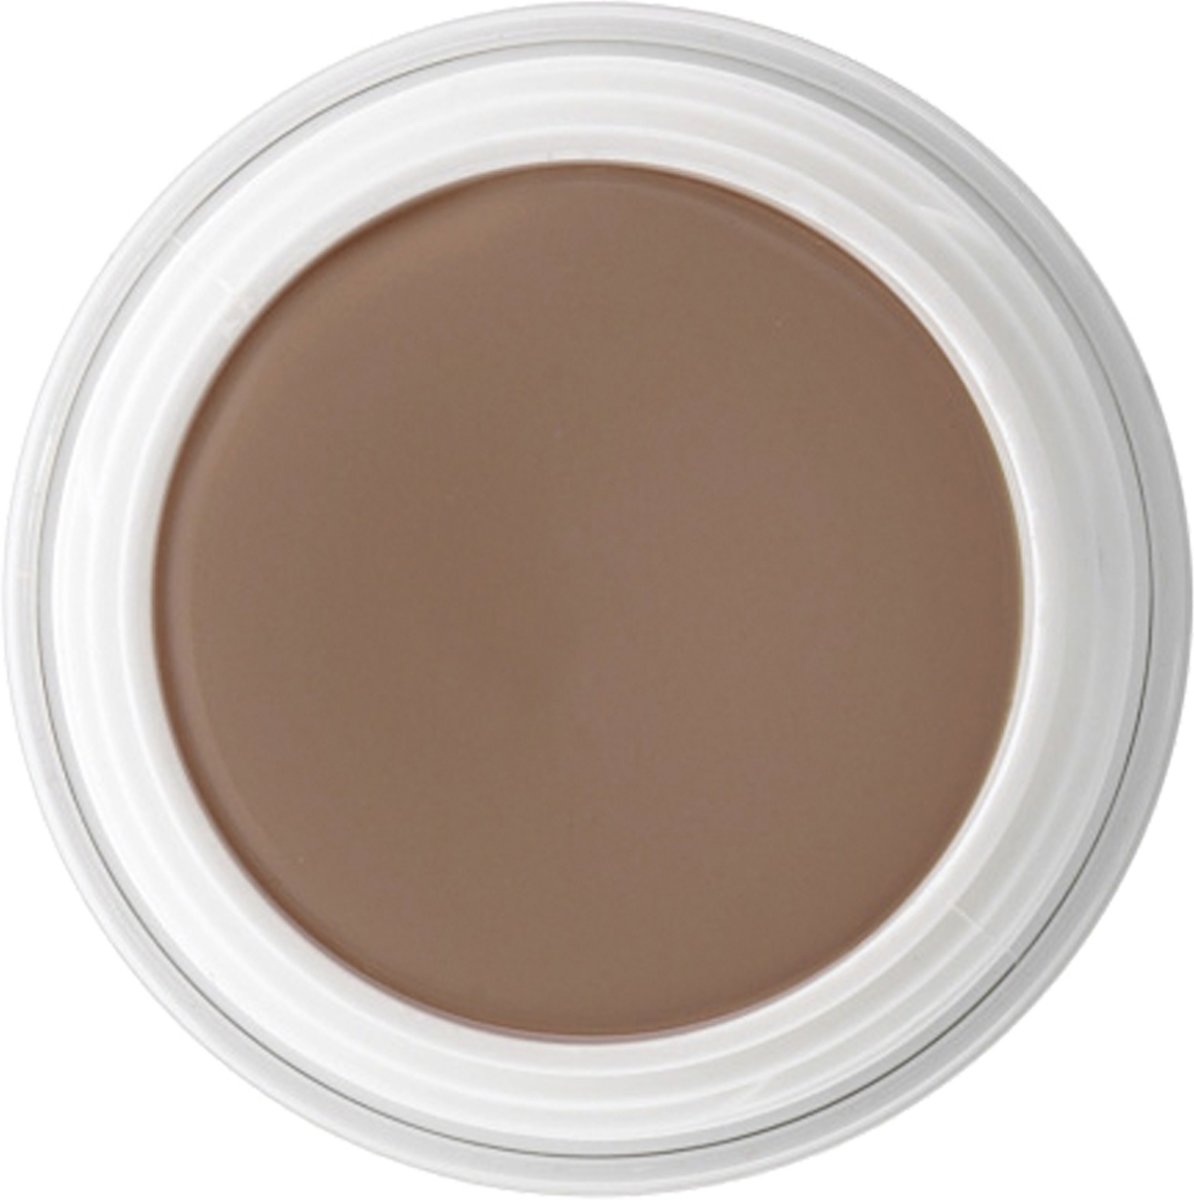 Malu Wilz Camouflage Cream Cinnamon Brownie 09